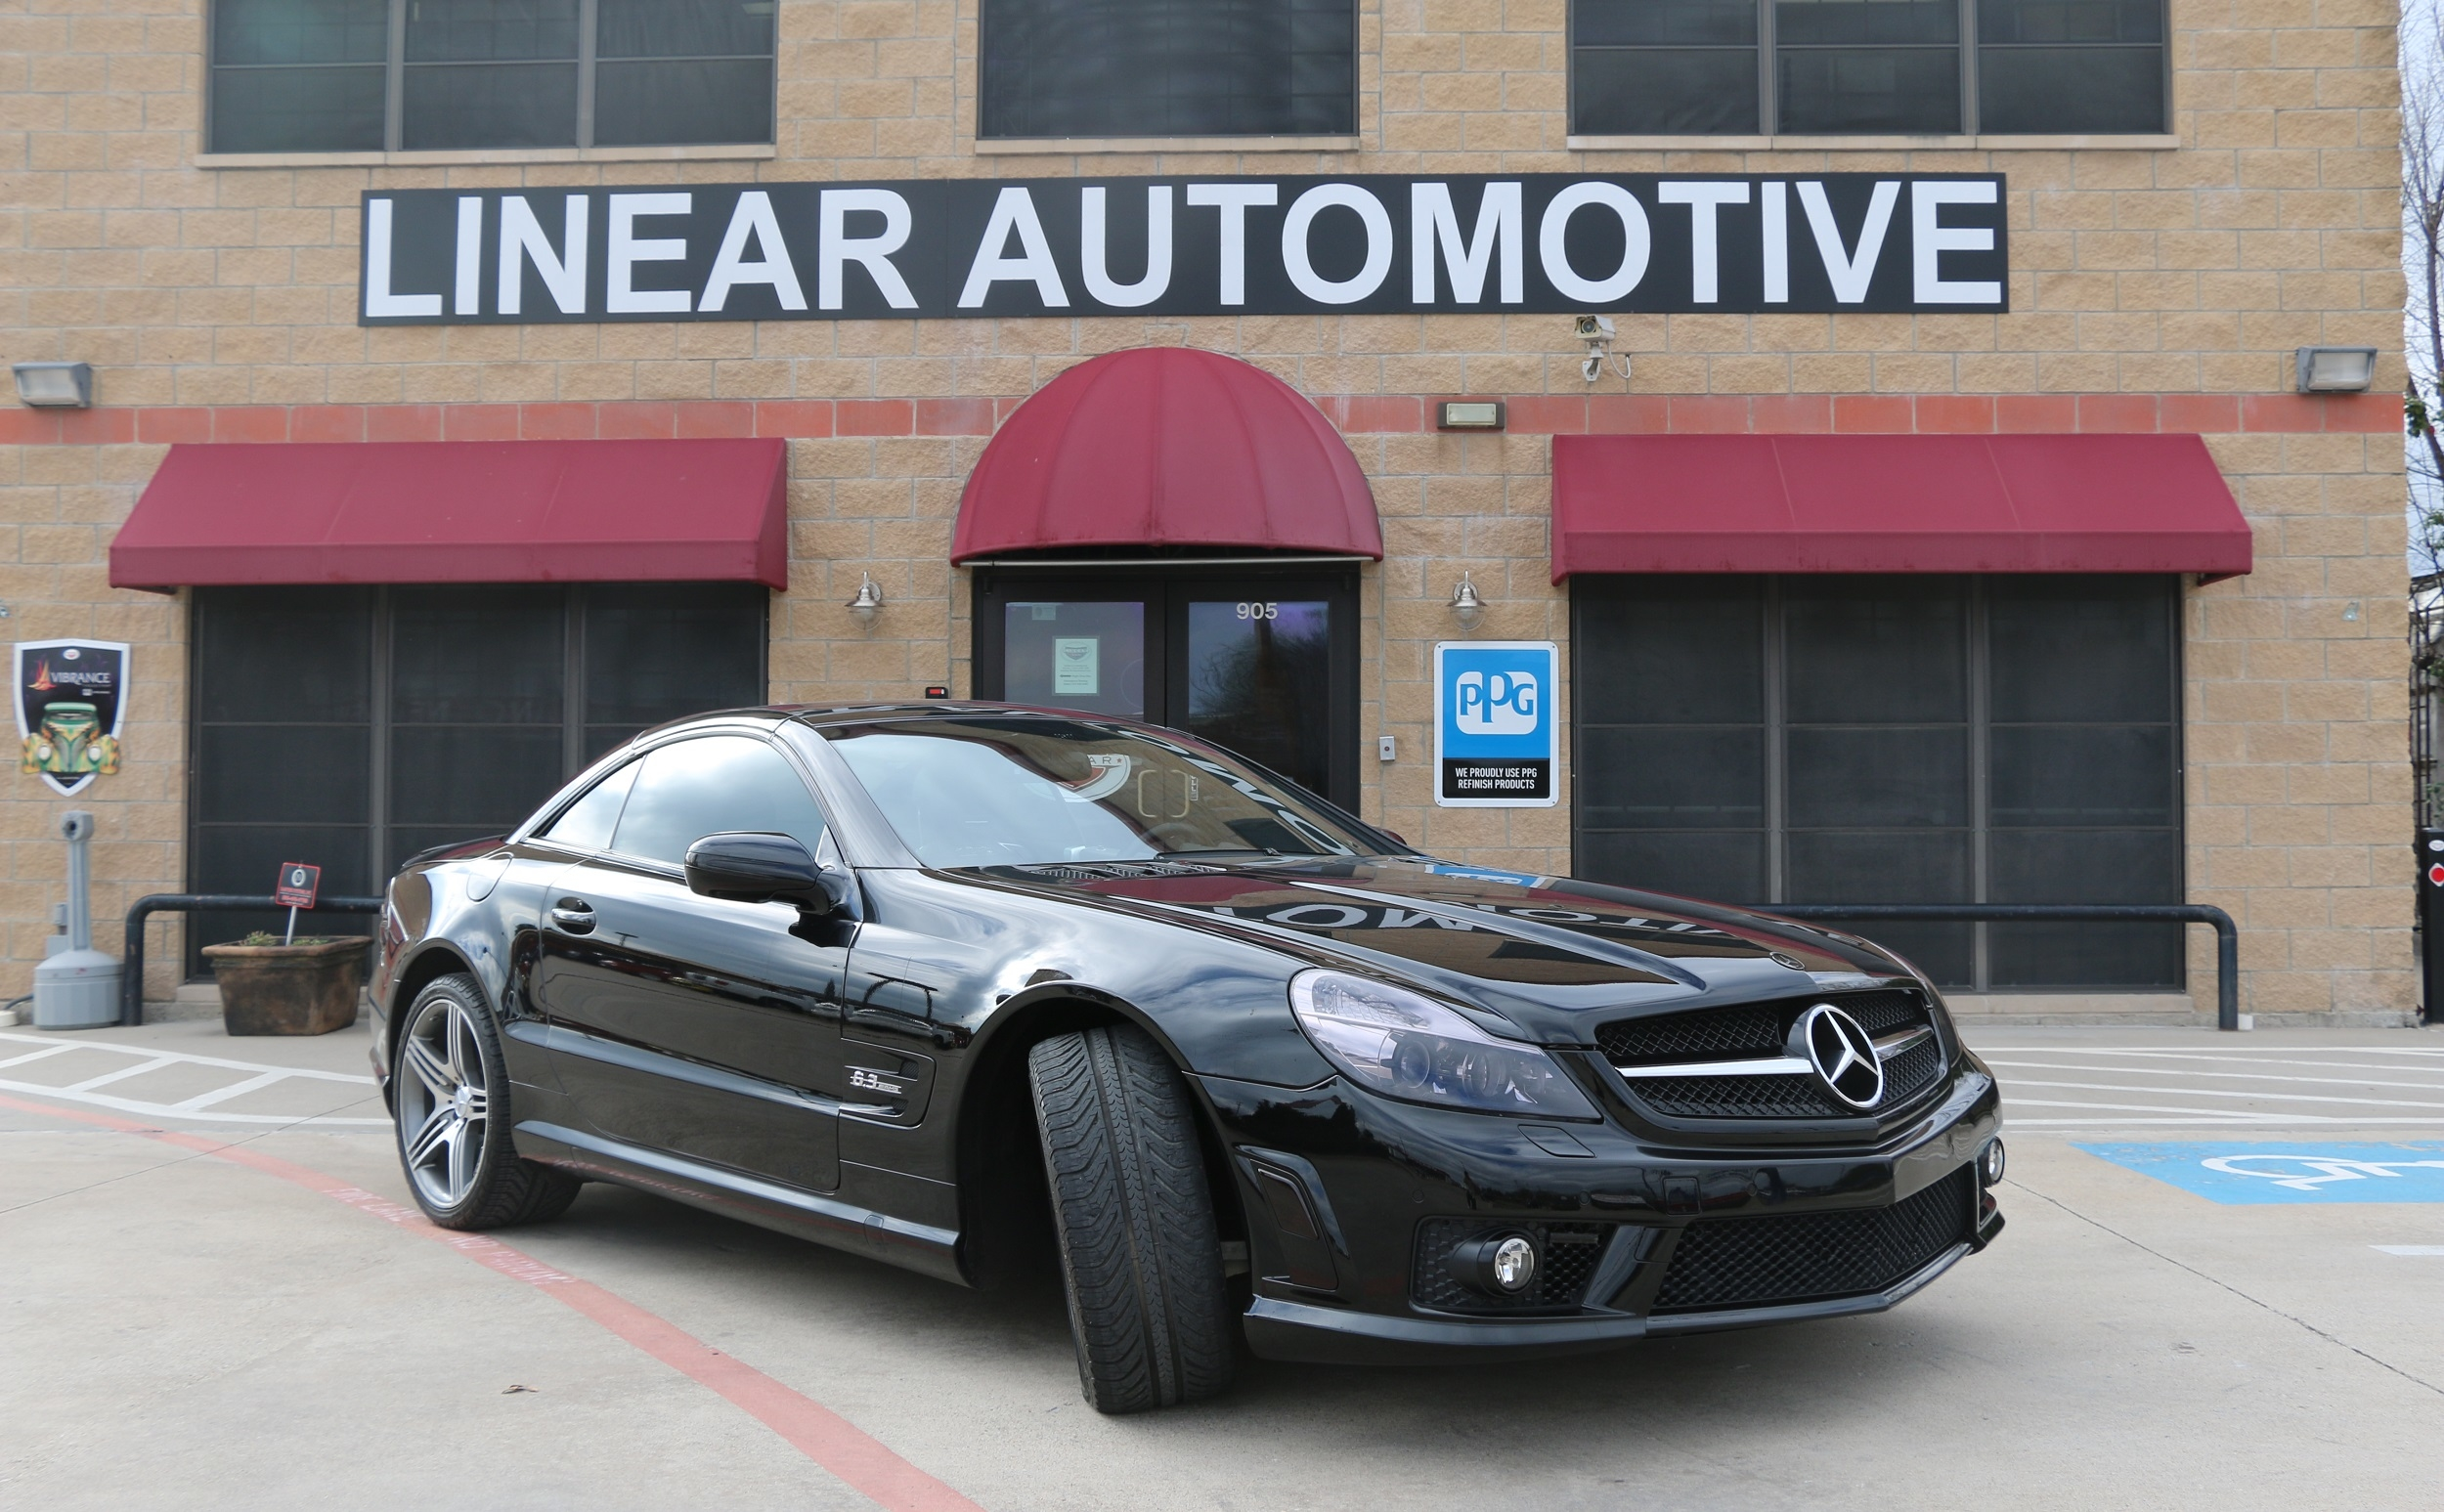 Linear automotive plano texas tx for Plano mercedes benz service